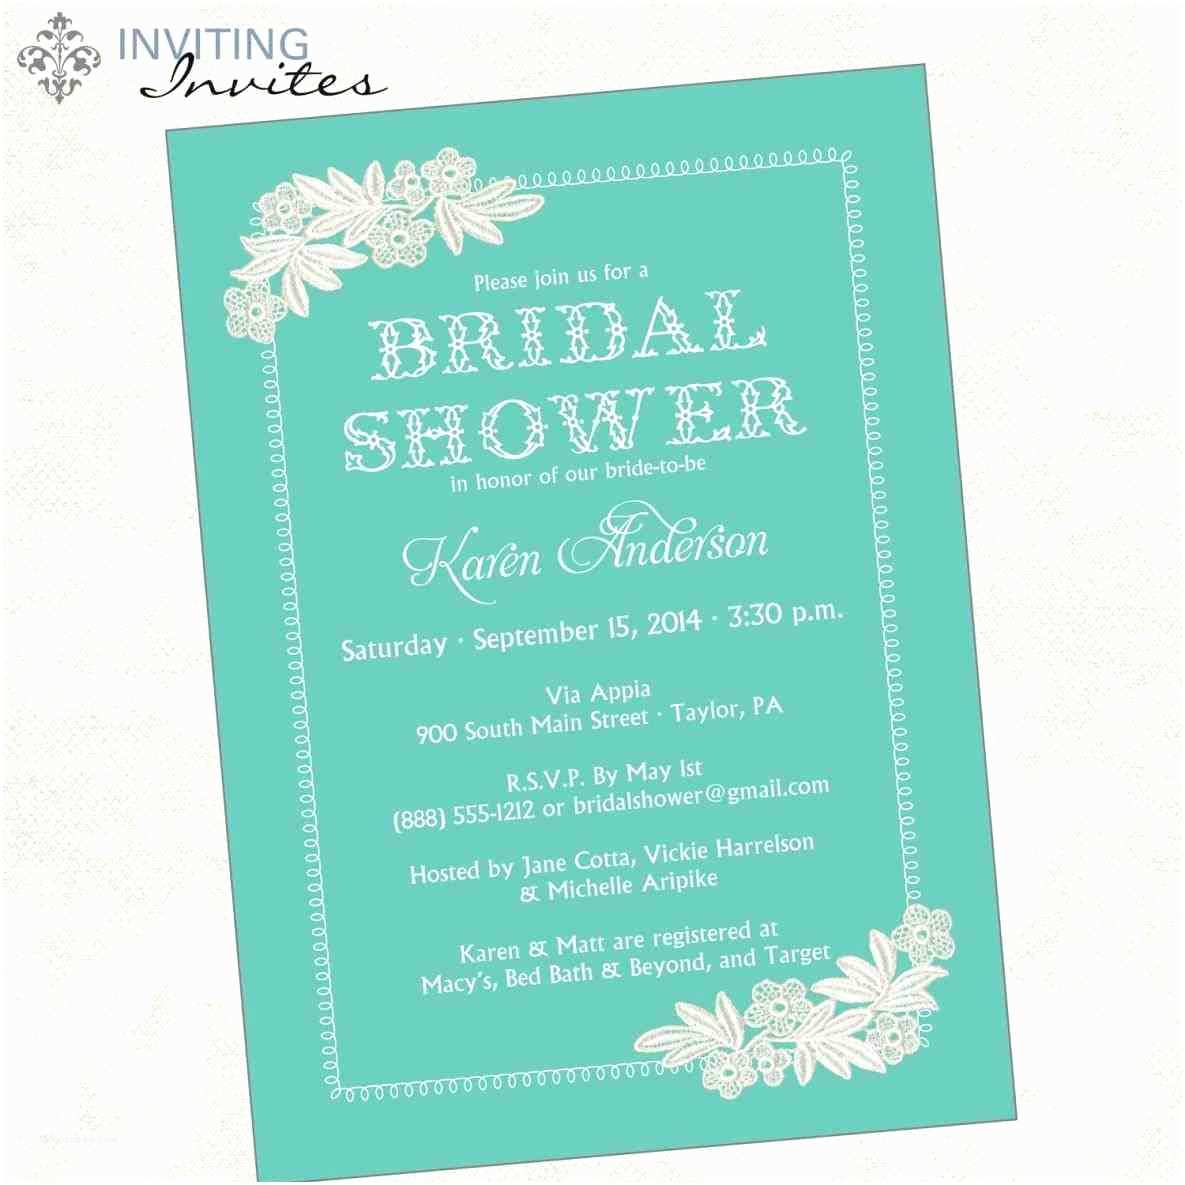 Jack And Jill Baby Shower Invitations Jack And Jill Wedding Shower Invitations